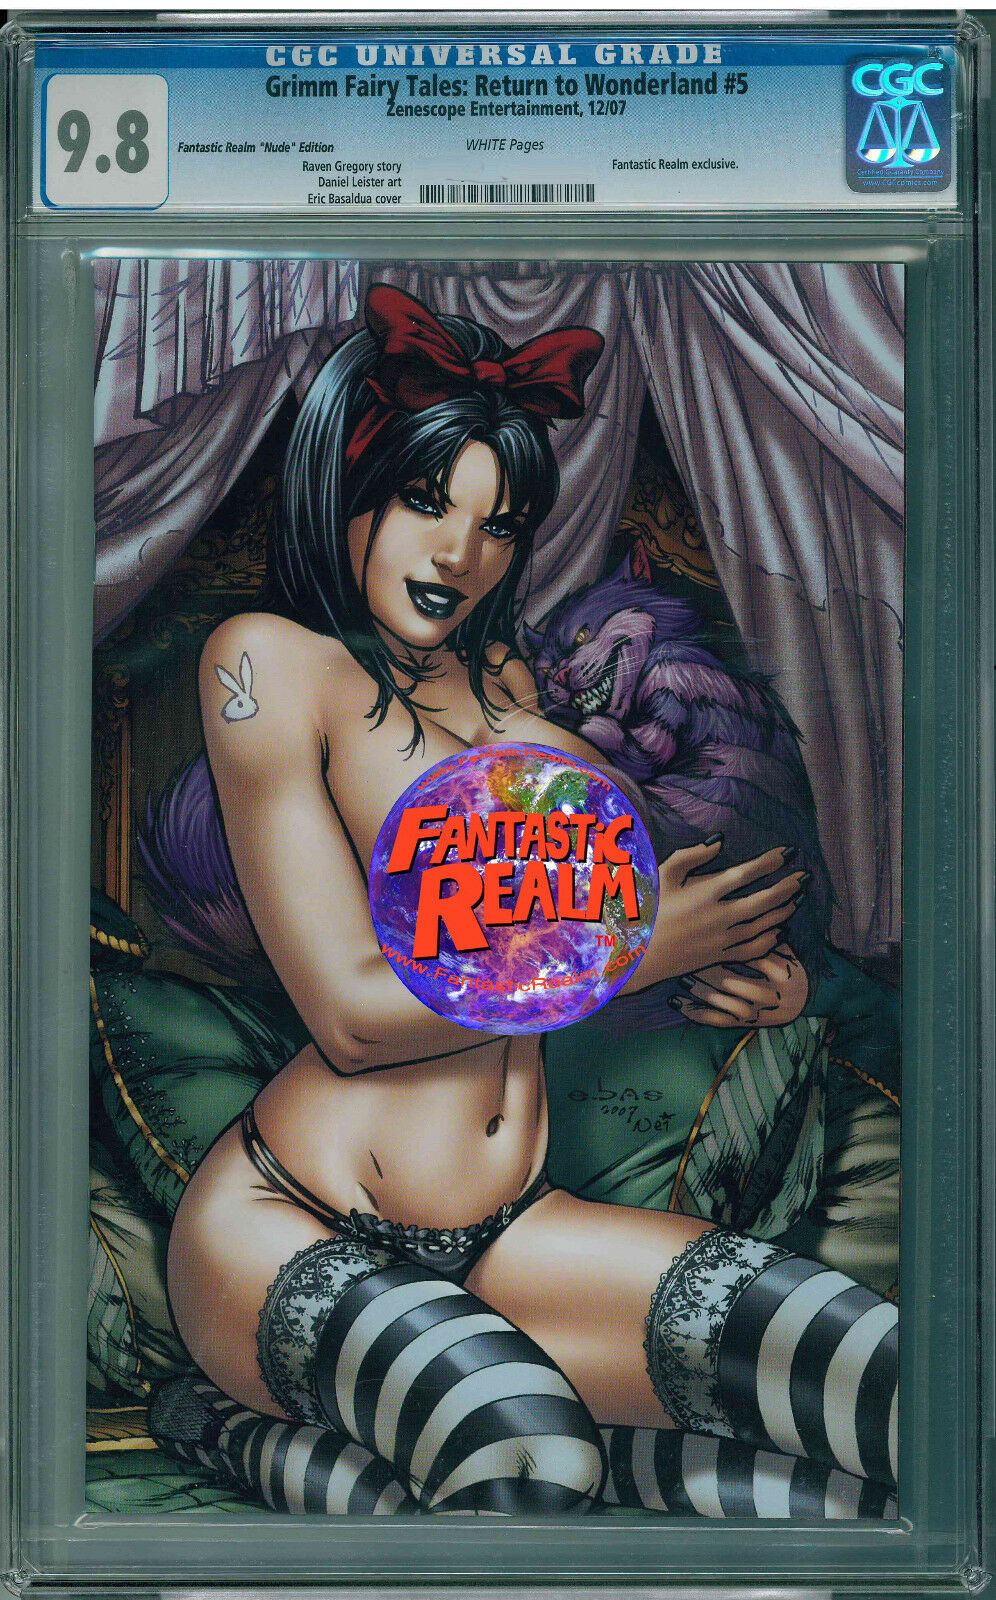 GRIMM FAIRY TALES: RETURN TO WONDERLAND #5 FANTASTIC REALM NUDE EDITION 9.8 CGC